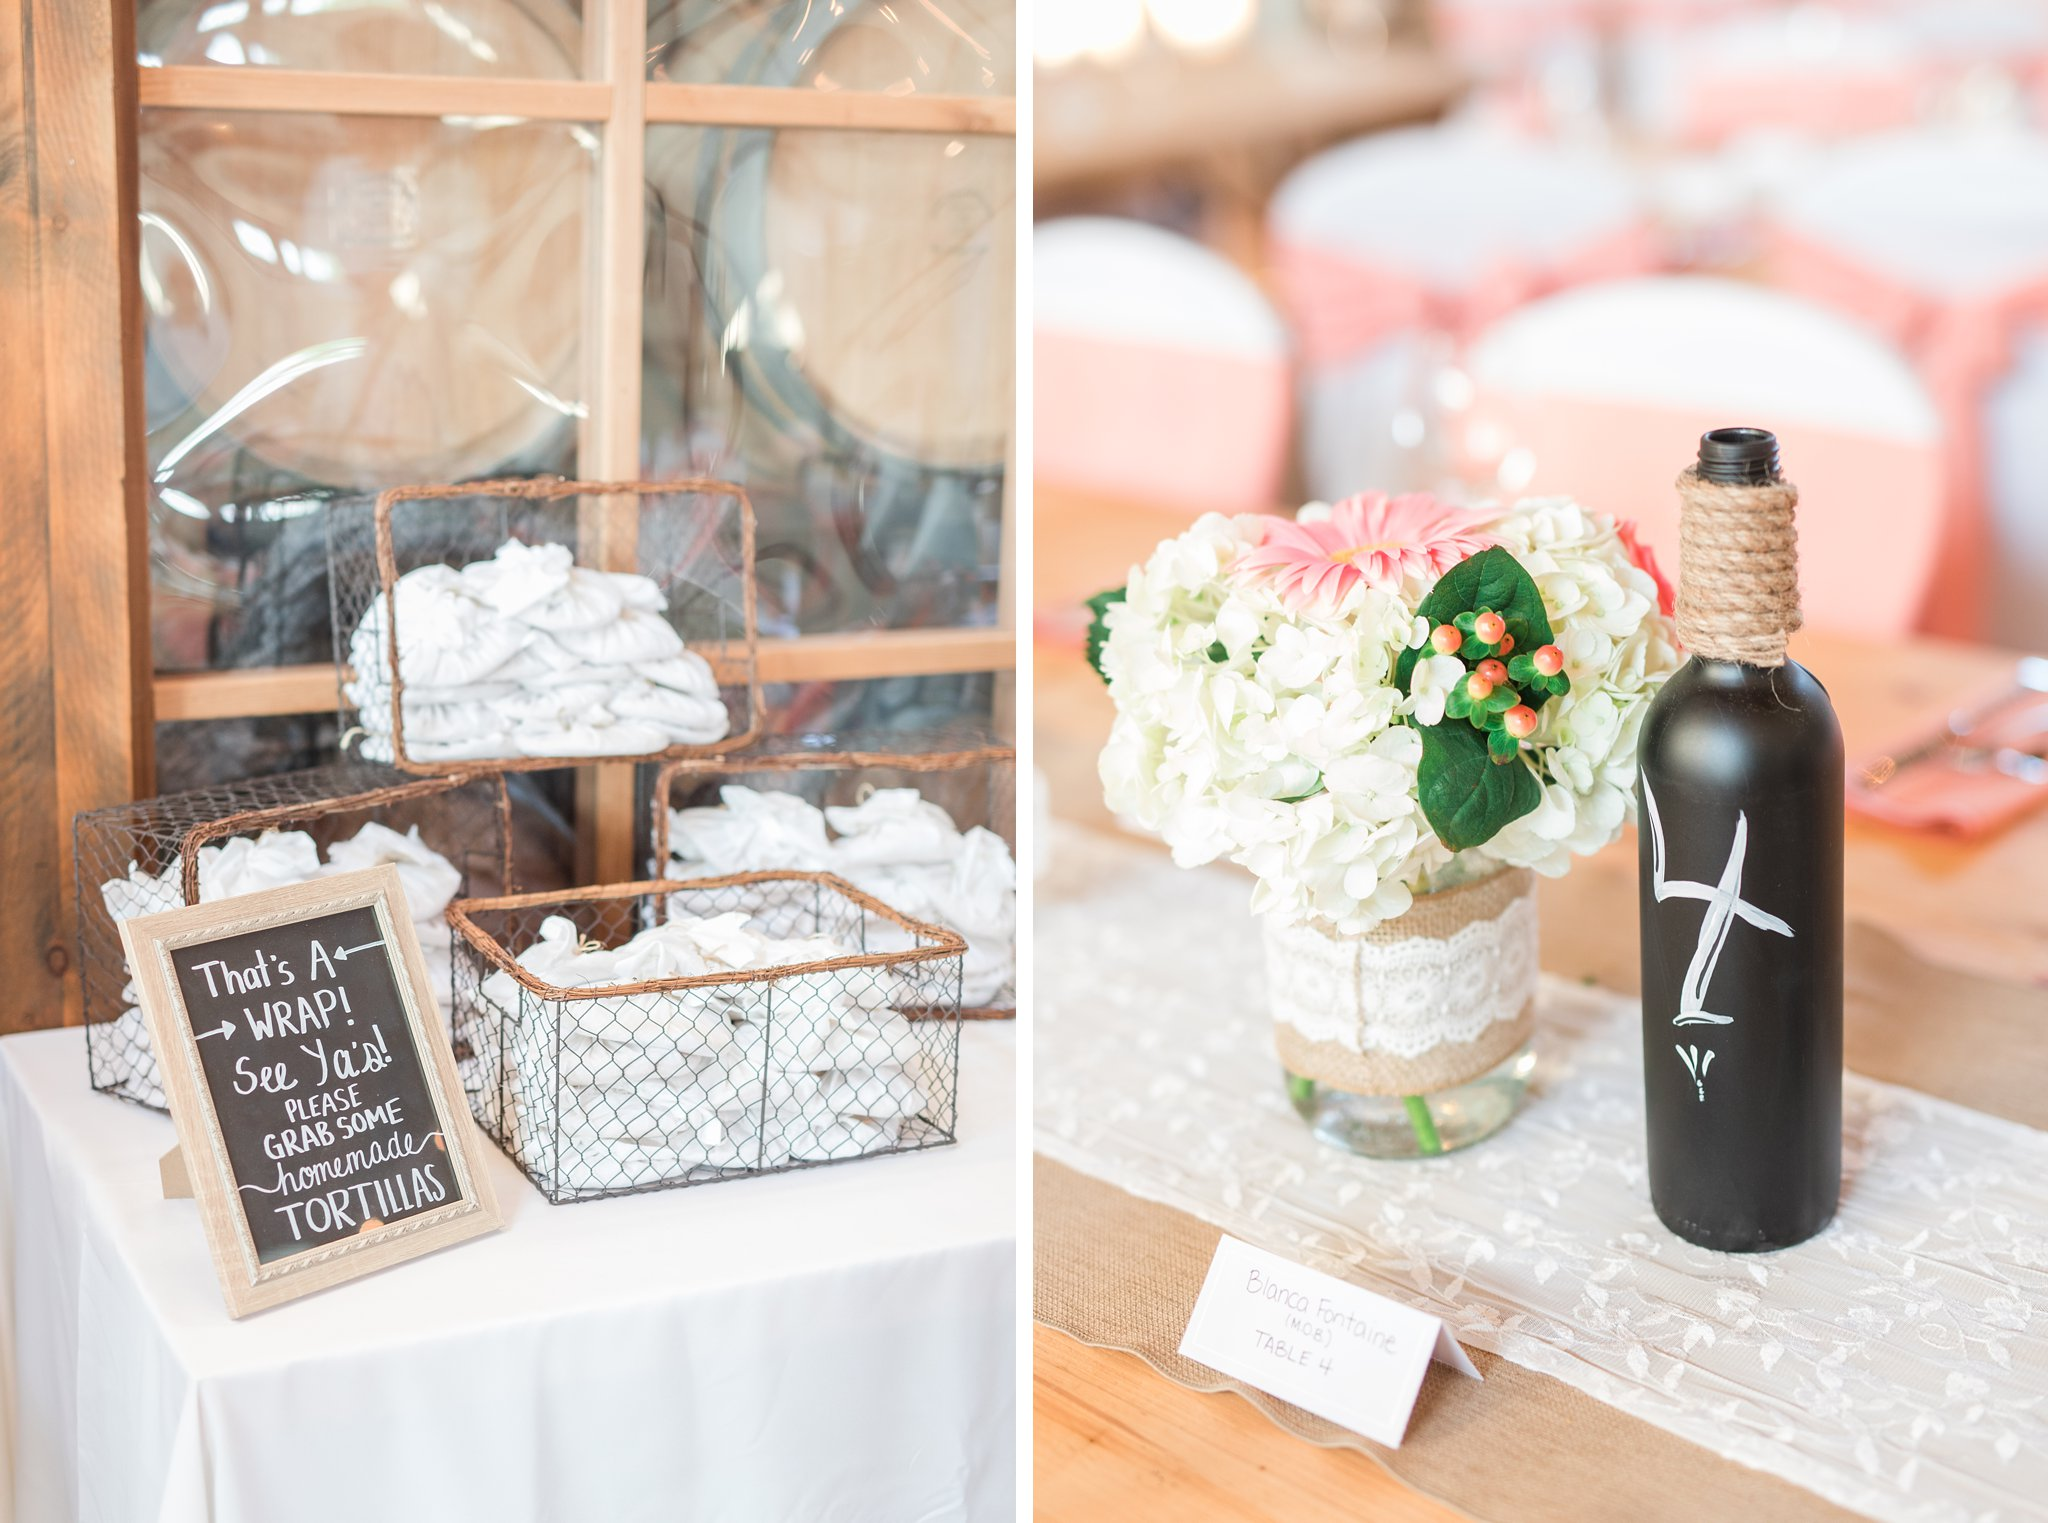 Homemade flour tortillas are the best wedding favour Vineyard wedding at Jabulani Amy Pinder Photography